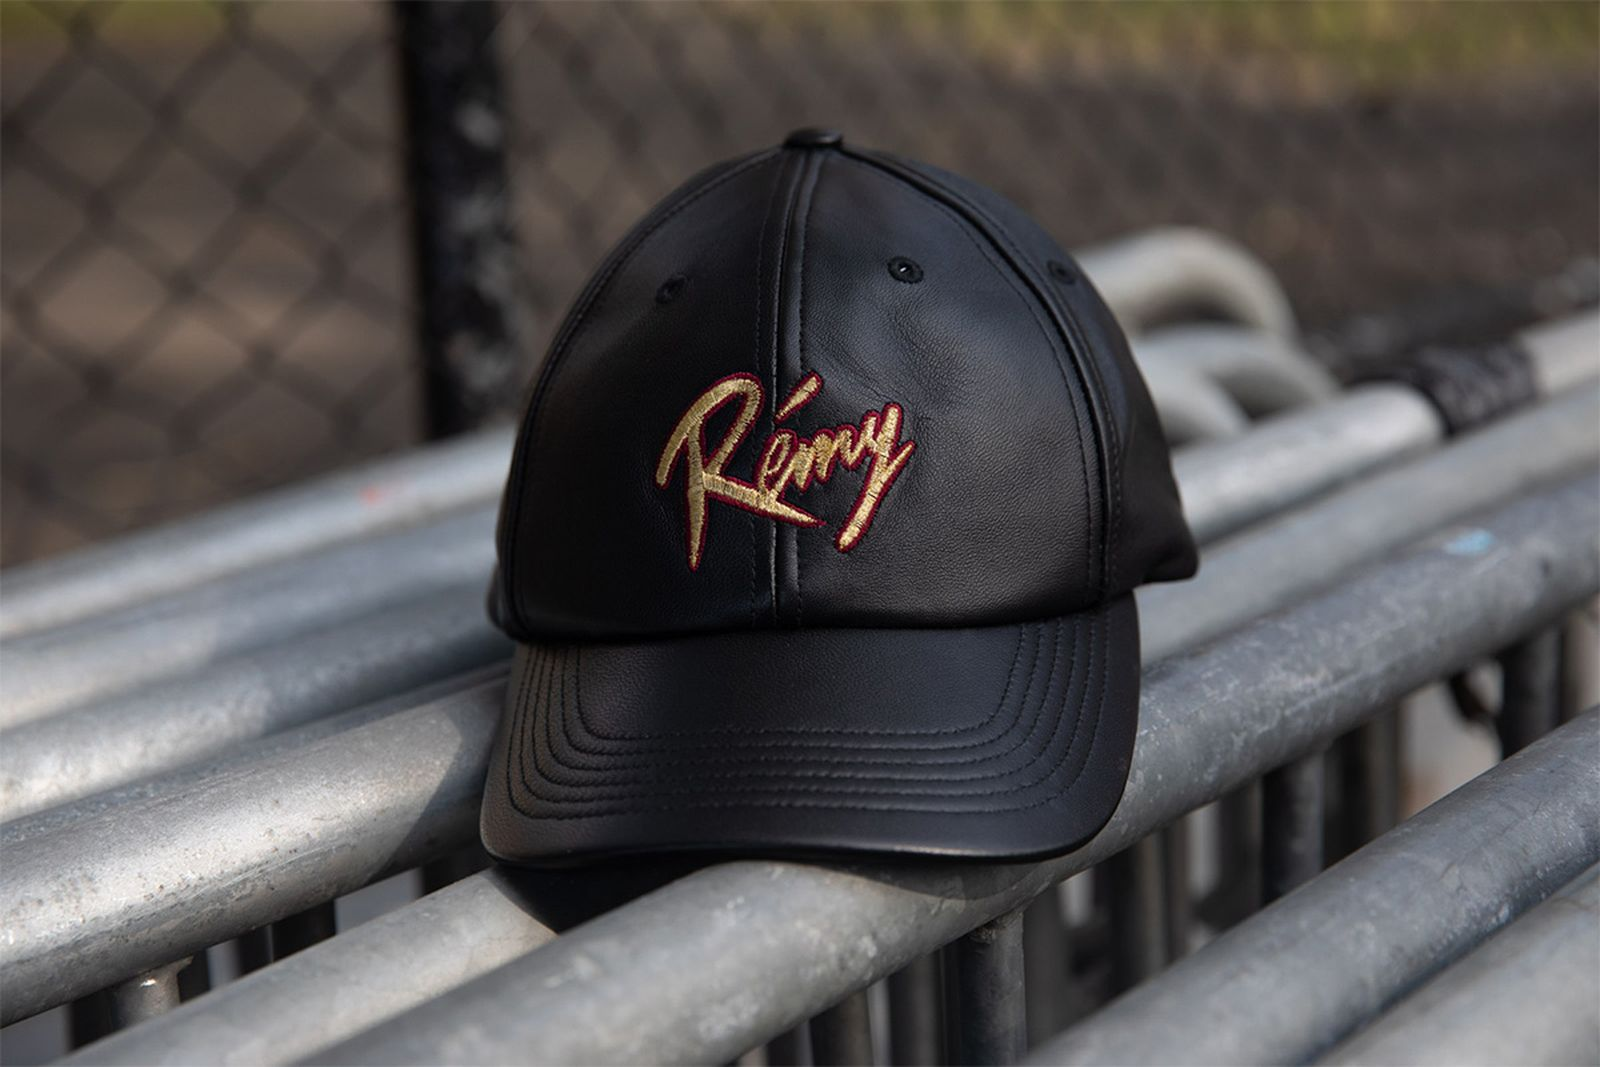 remy martin just don cap